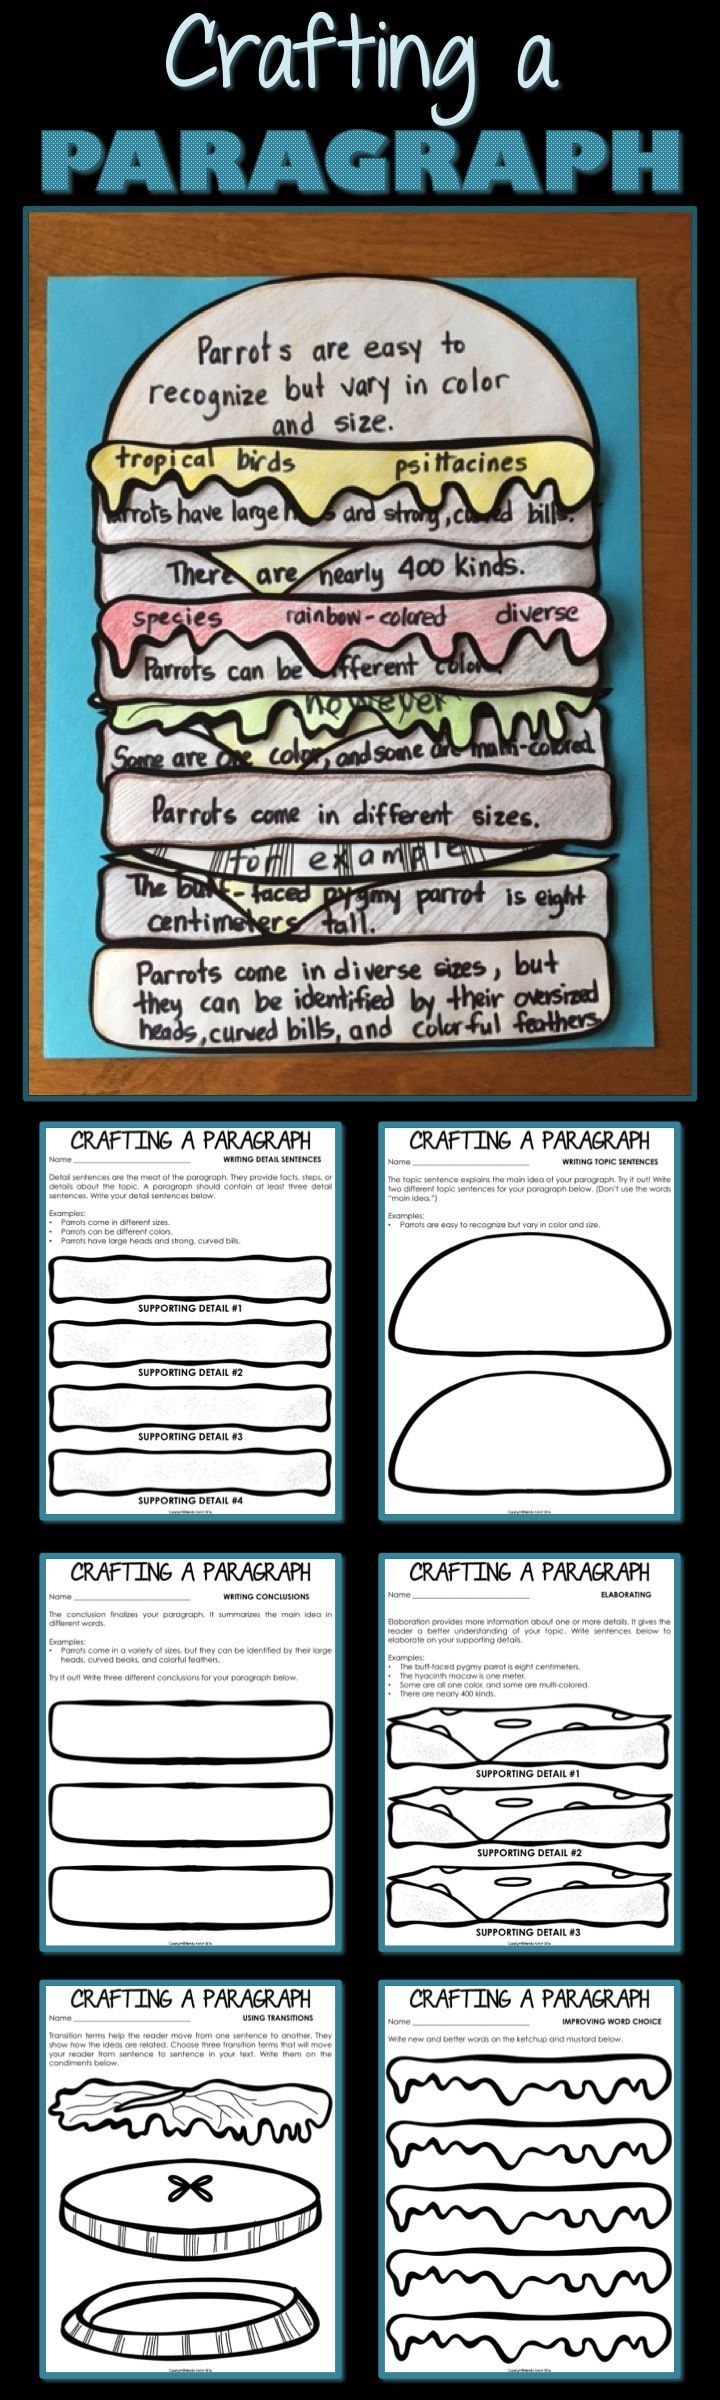 Teach kids how to plan, organize, and improve their informational (informative, expository, nonfiction) paragraphs with this delicious hamburger analogy. It works great in third, fourth, or fifth grade. Visit Enjoy-Teaching.com for free posters.